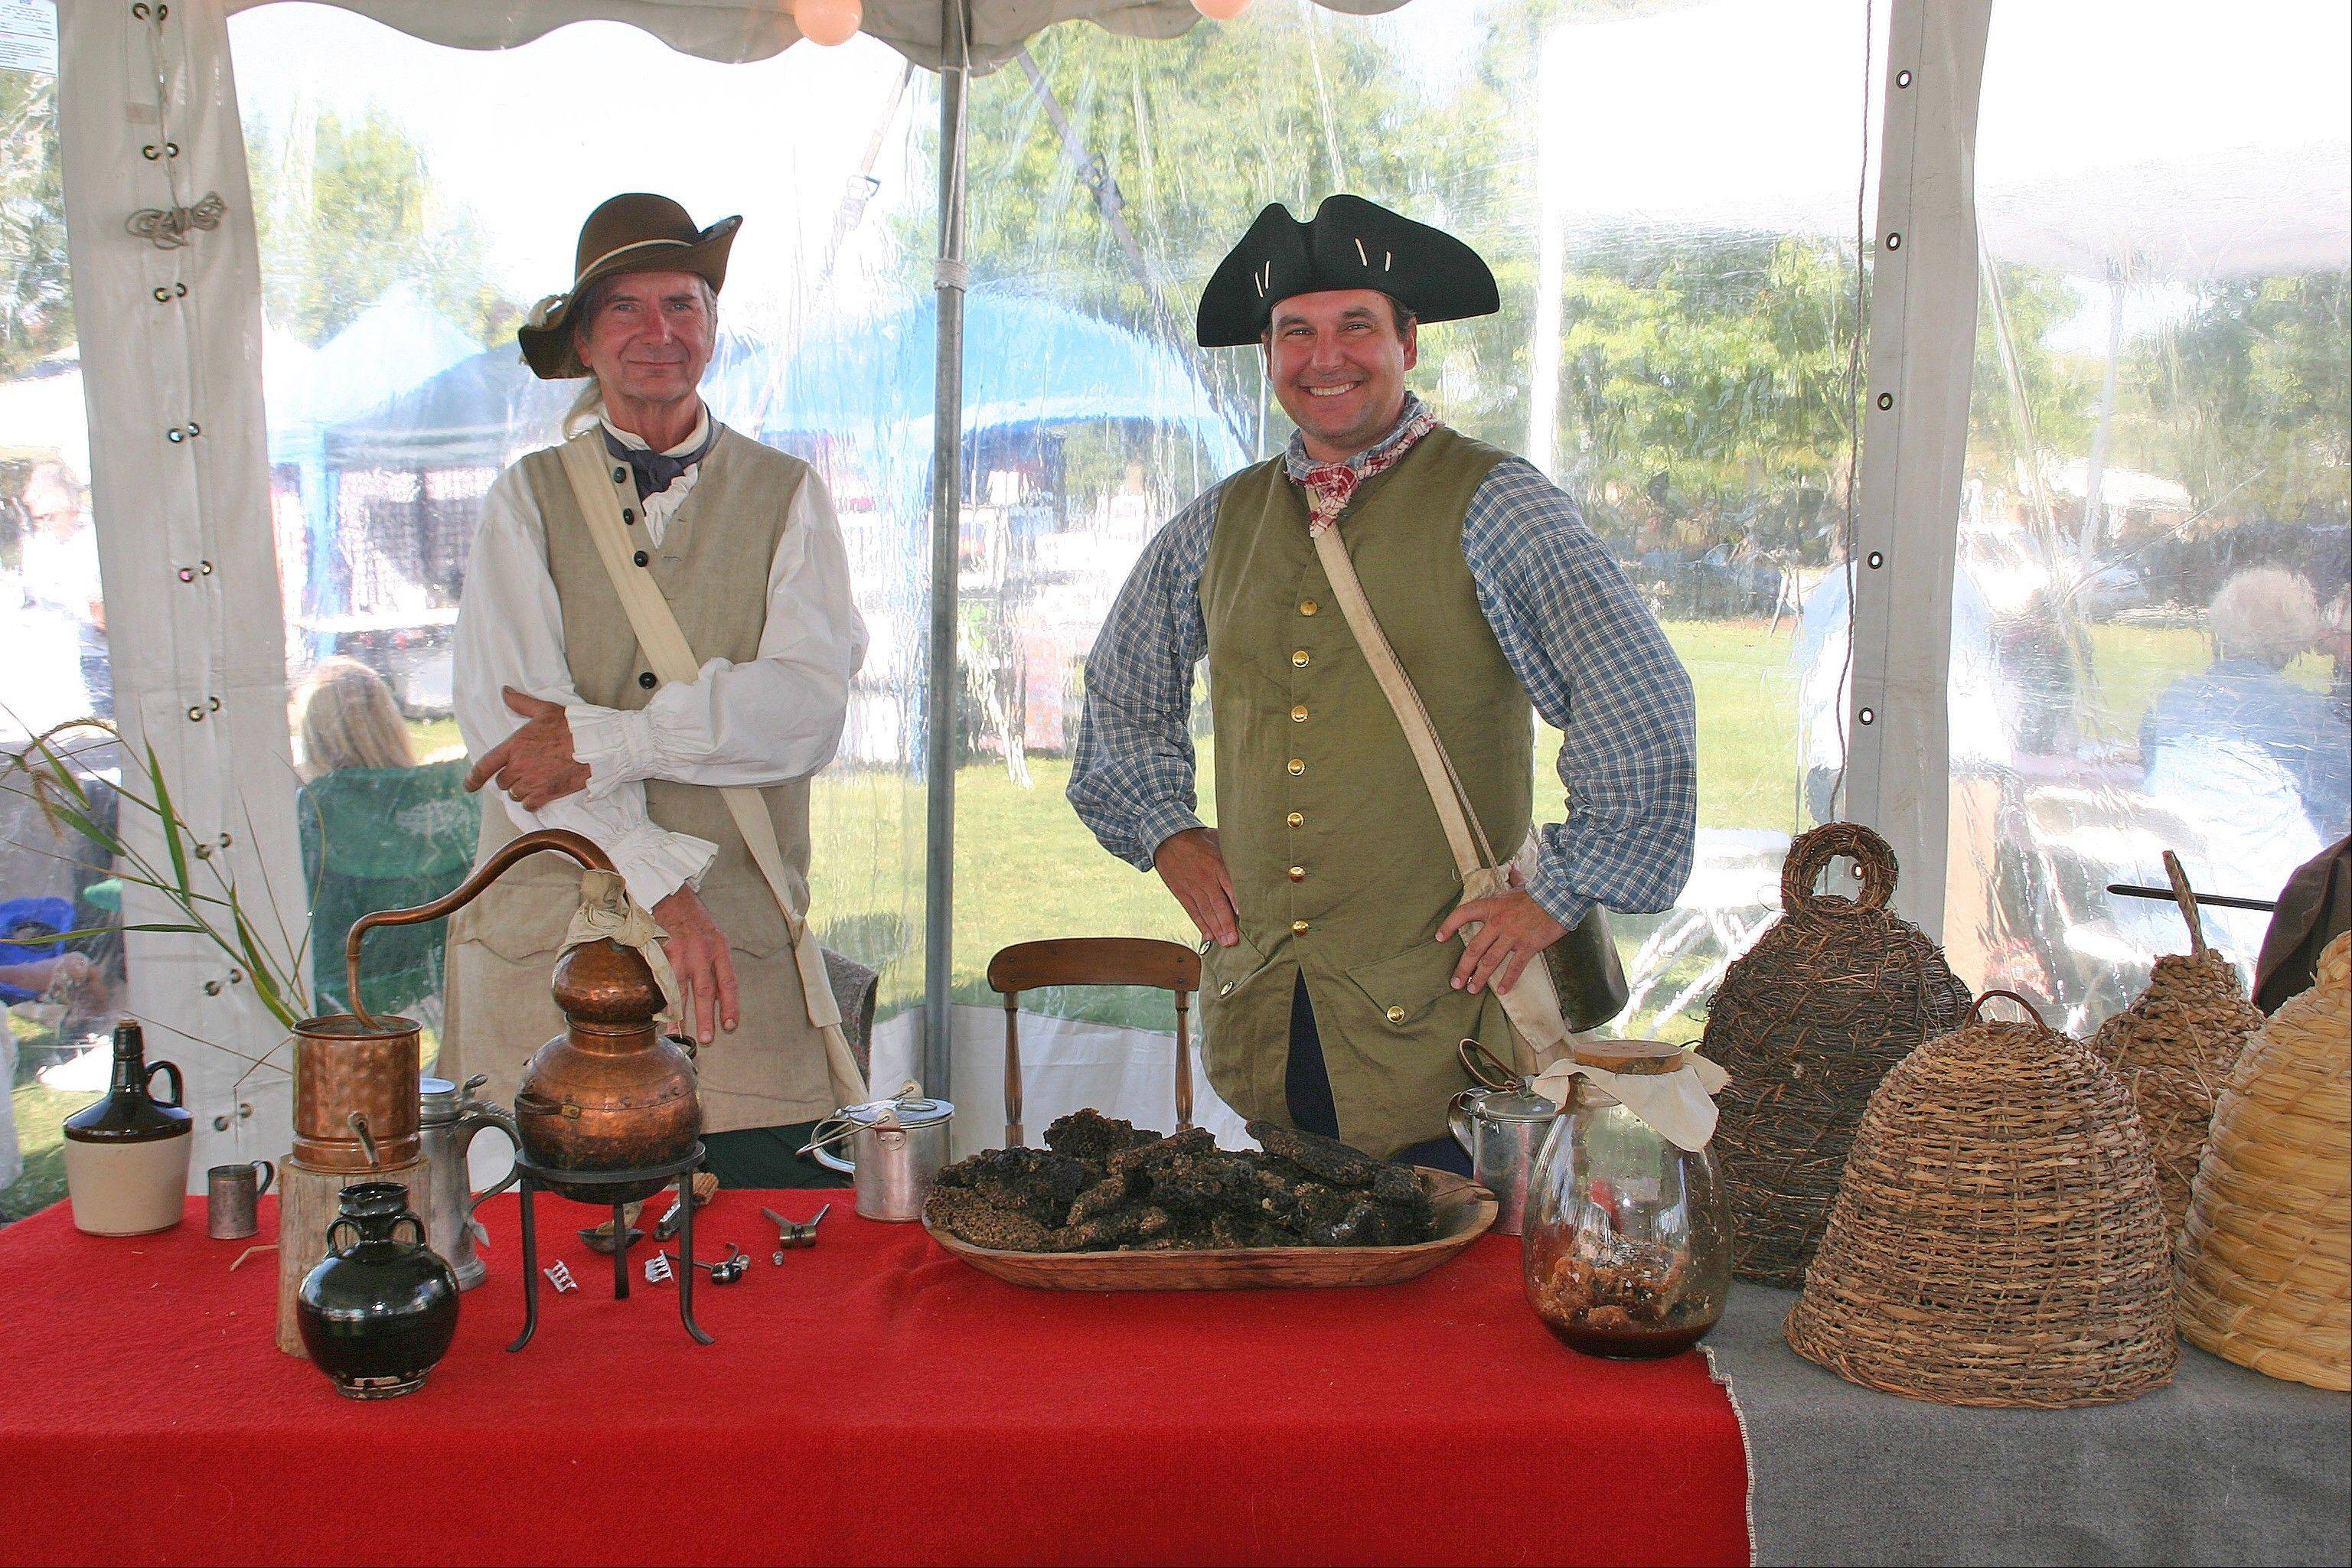 Costumed interpreters in the Des Plaines History Museum Country Fair Tent will talk about the history of Des Plaines at Fall Fest Des Plaines Sept. 13-15 at Lake Park.